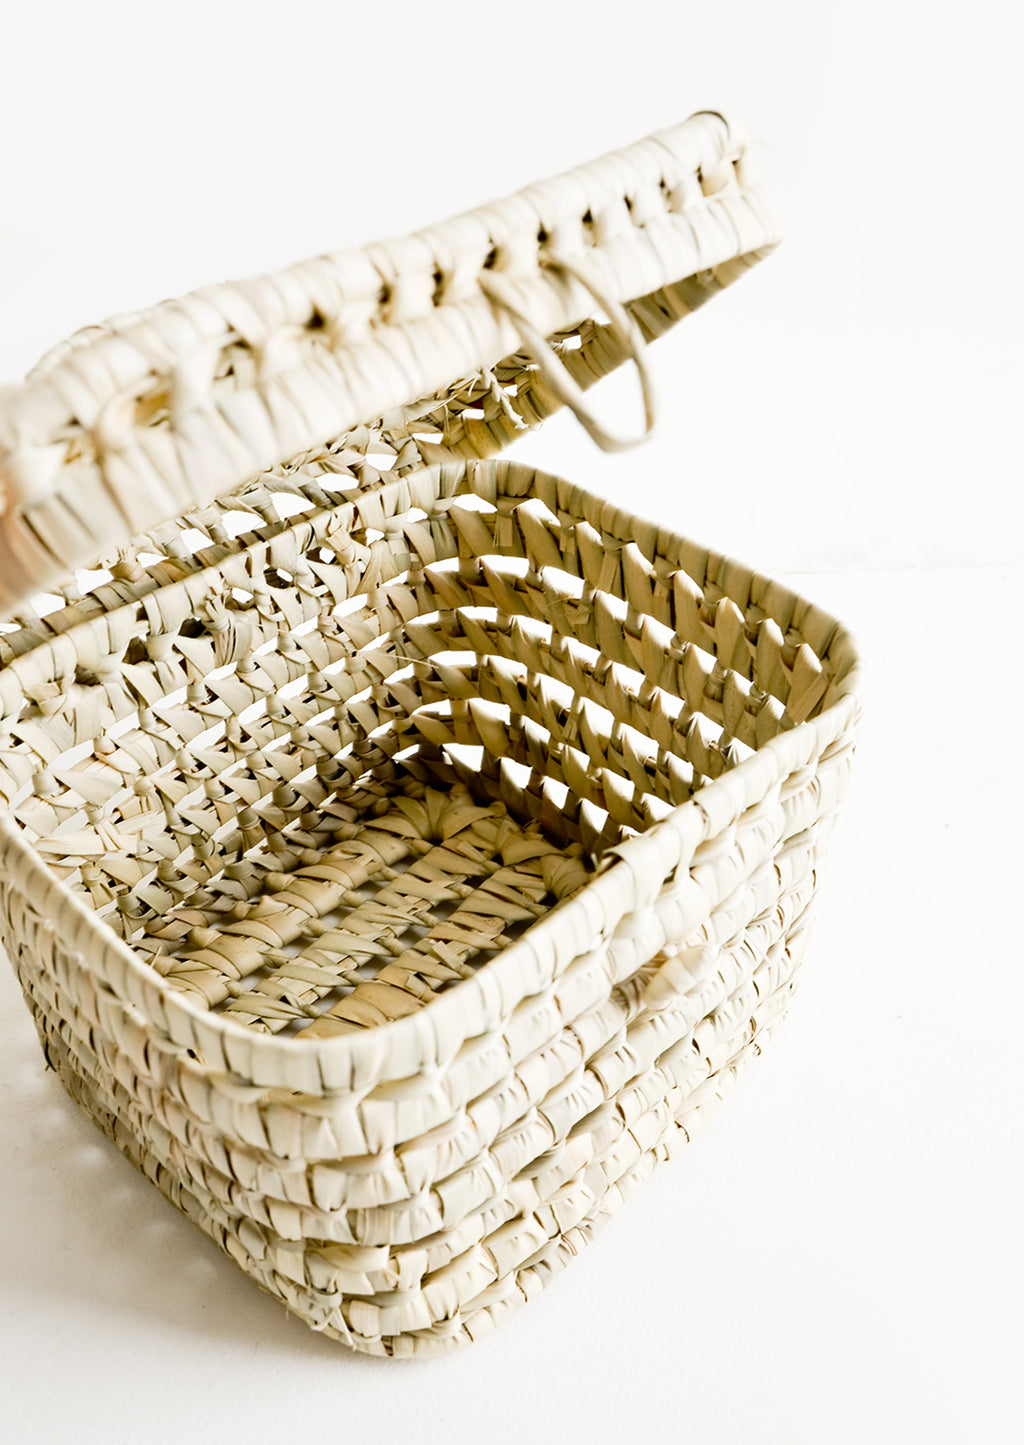 2: The empty interior of a square, lidded basket woven from natural palm leaf.